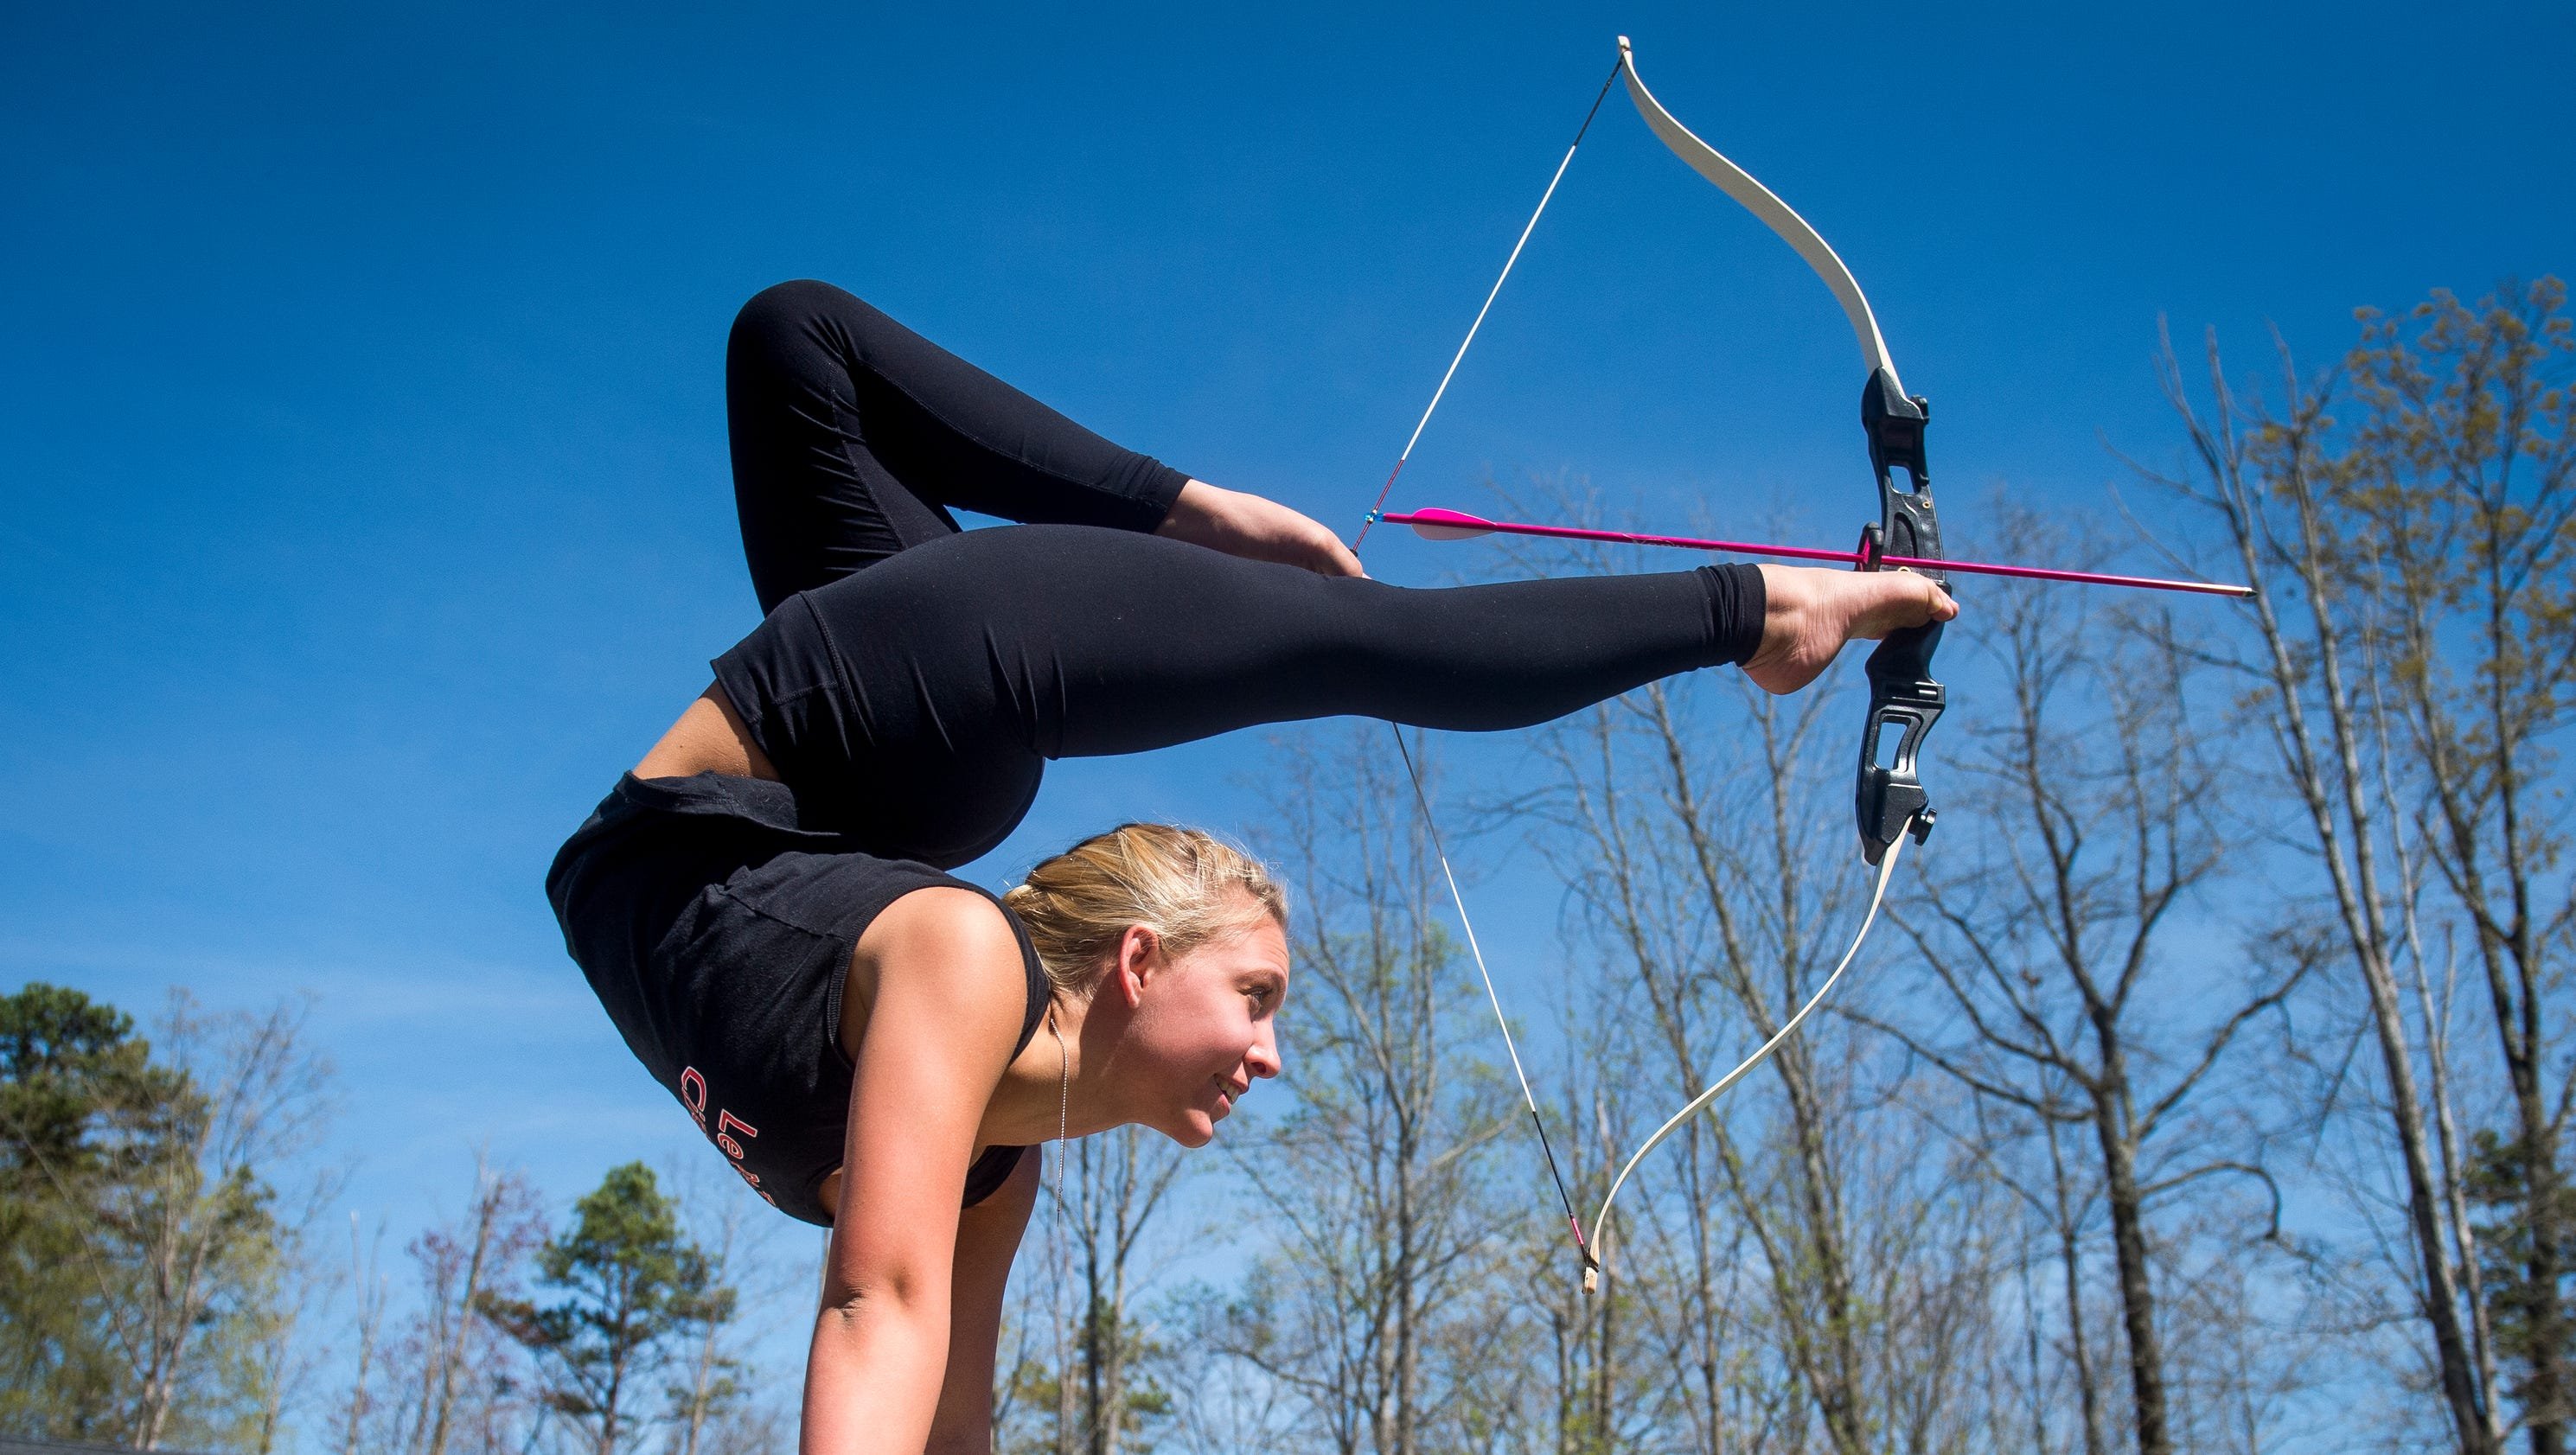 Feat Of Agility Knox Teen Shoots Bow Amp Arrow Using Only Her Toes